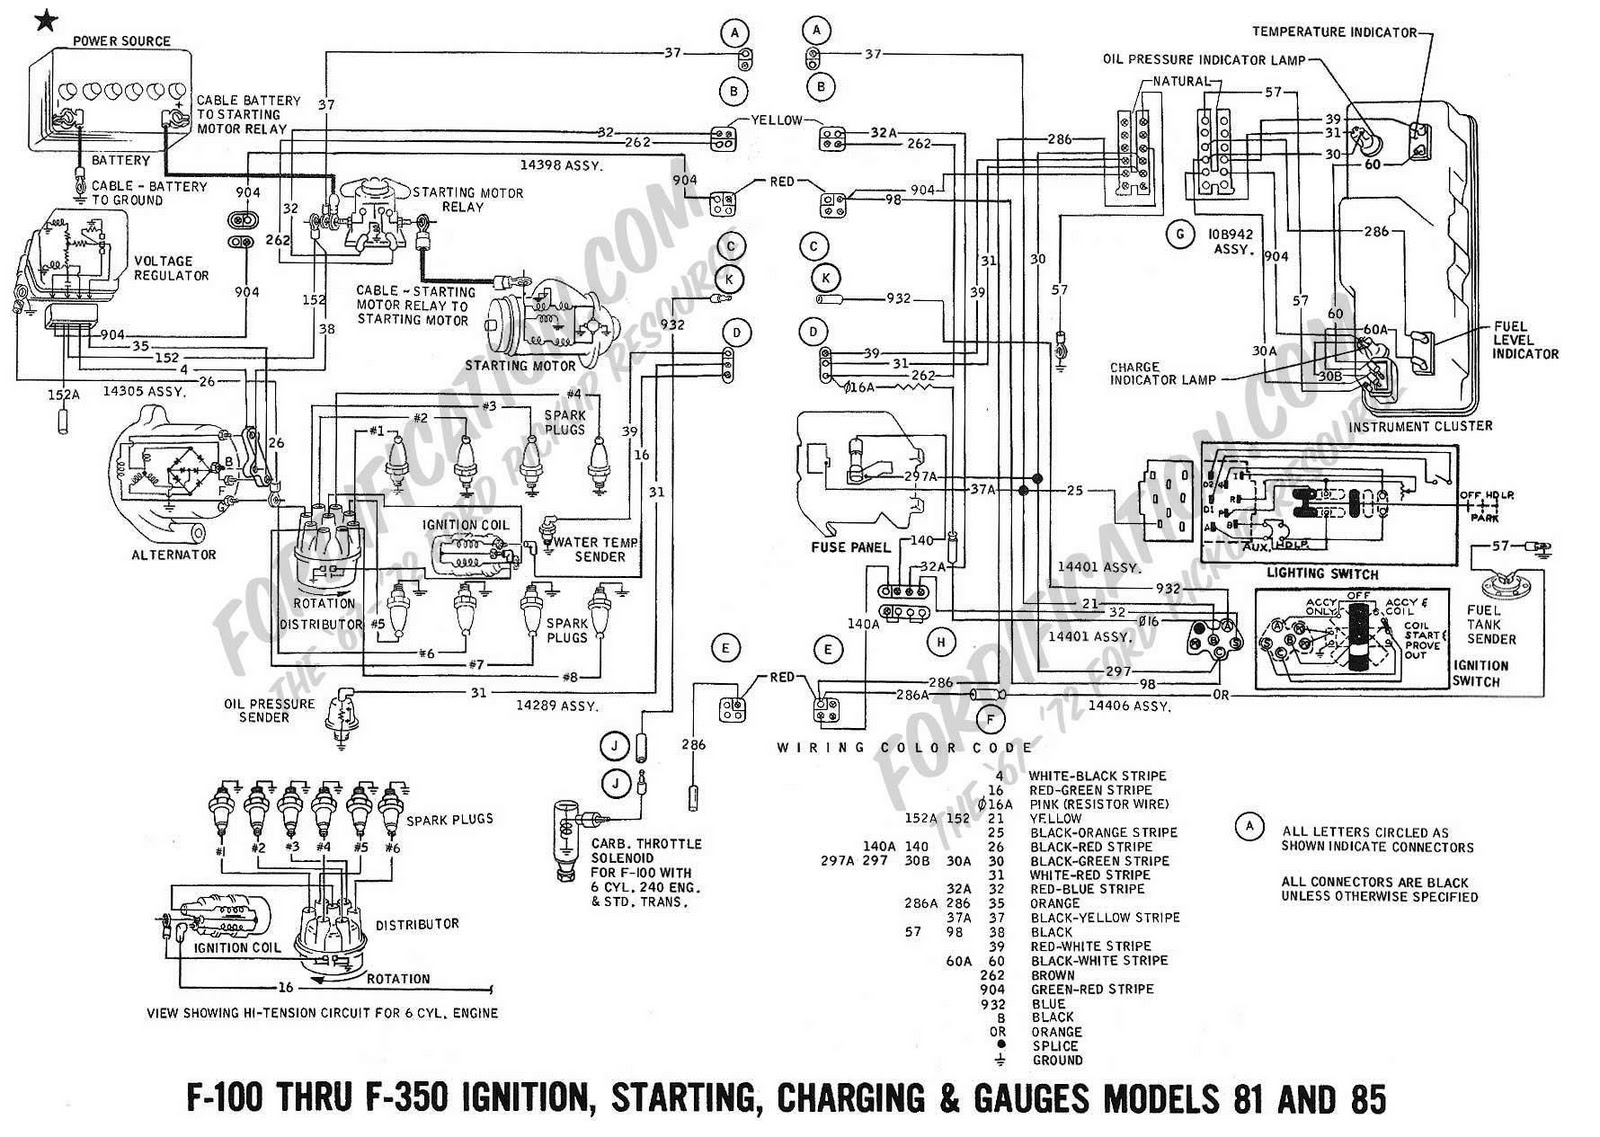 hight resolution of 65 ford galaxie wiring diagram schematic blog about wiring diagrams 1970 ford mustang wiring diagram 1966